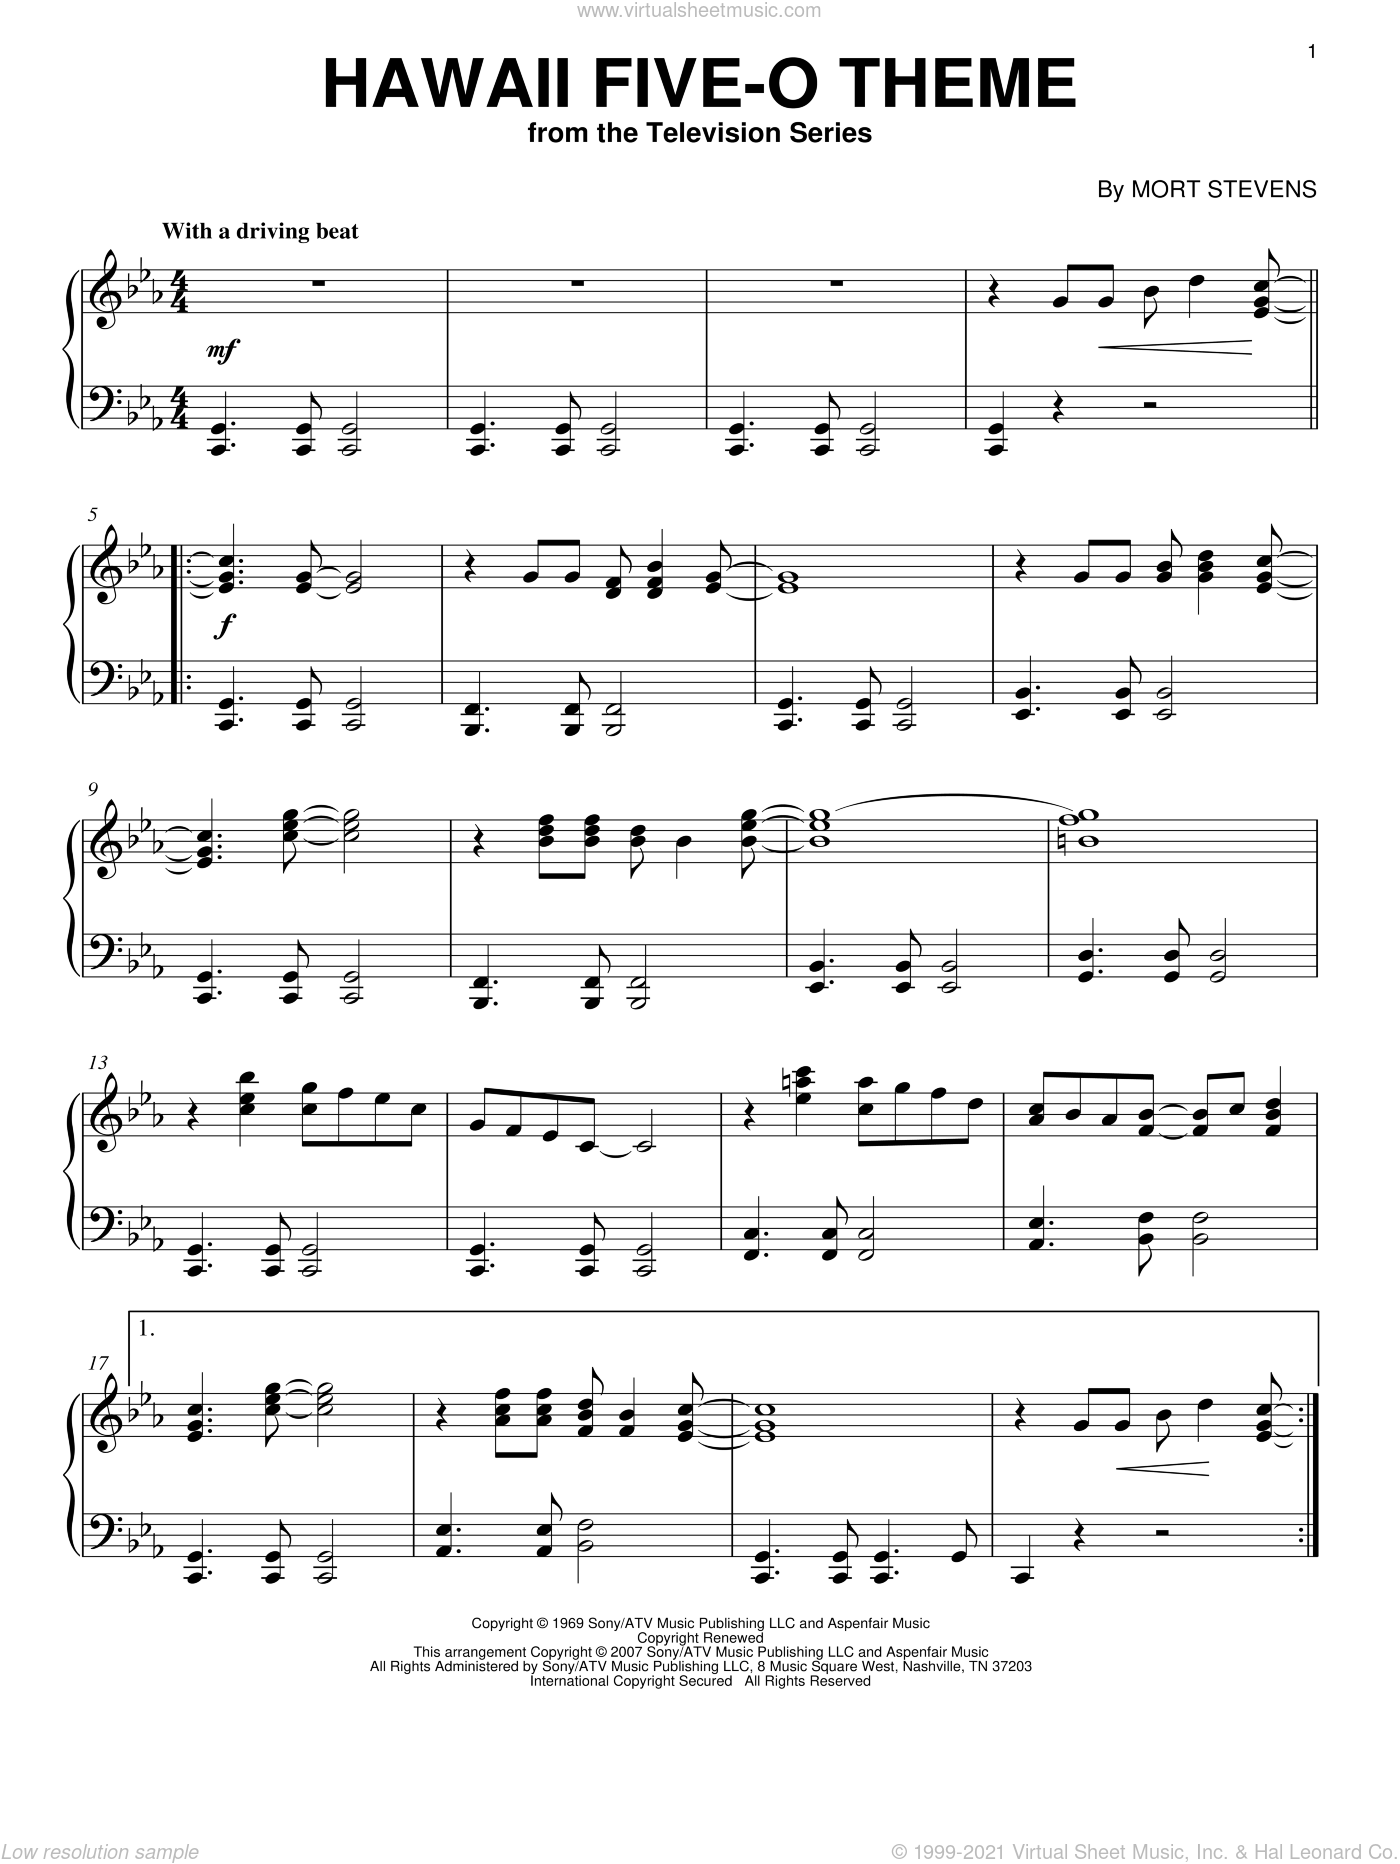 Hawaii Five-O Theme sheet music for piano solo by The Ventures and Mort Stevens, intermediate skill level